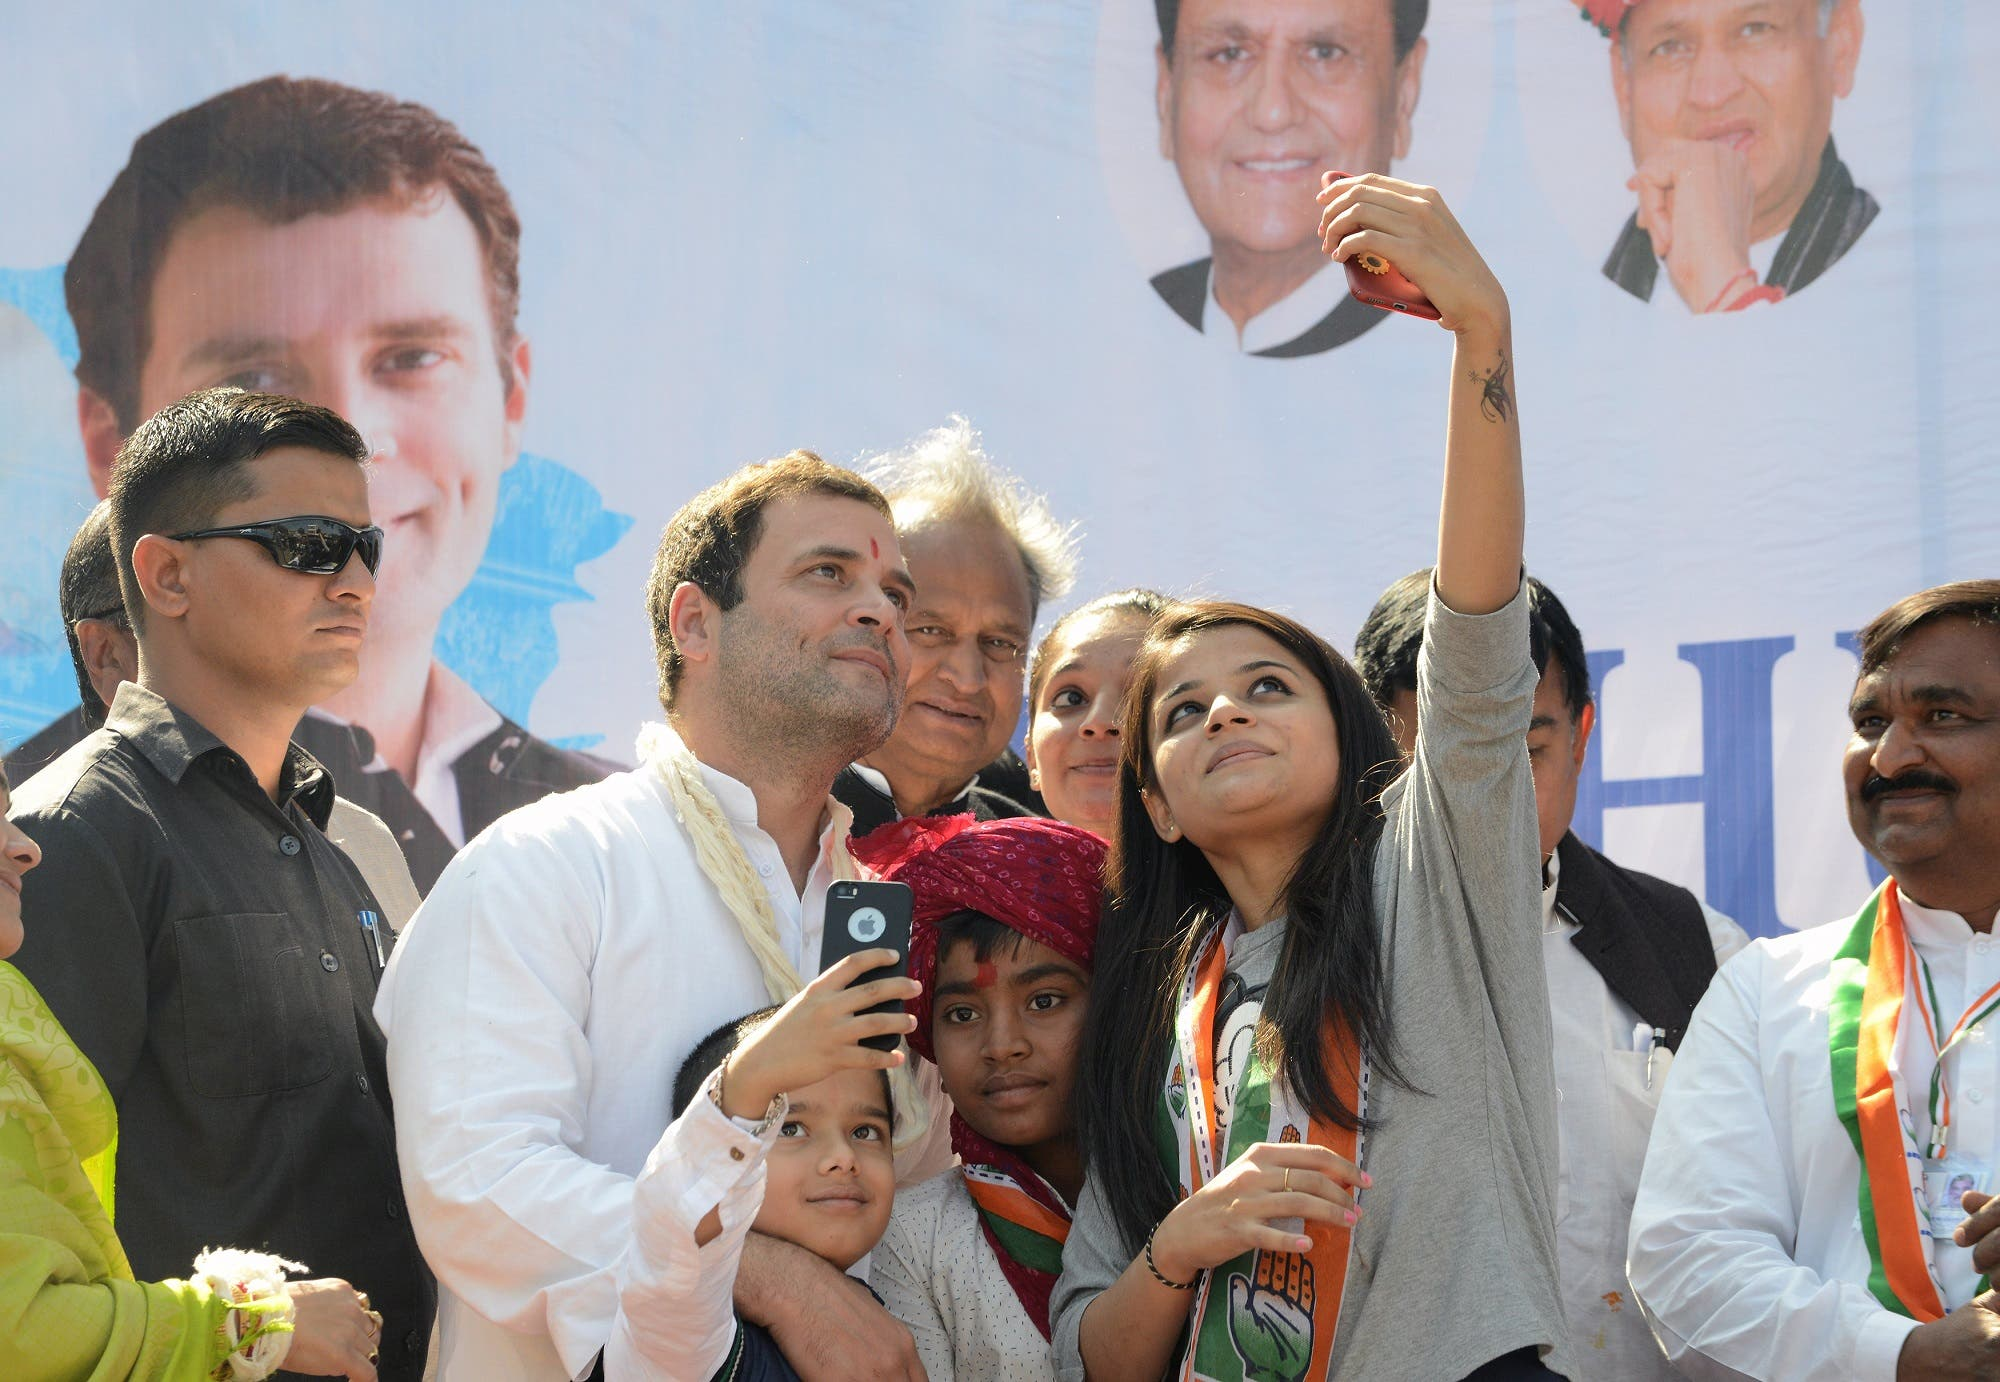 Rahul Gandhi takes a selfie photograph photo with supporters at a rally in Dahegam, some 40km from Ahmedabad, on November 25, 2017. (AFP)